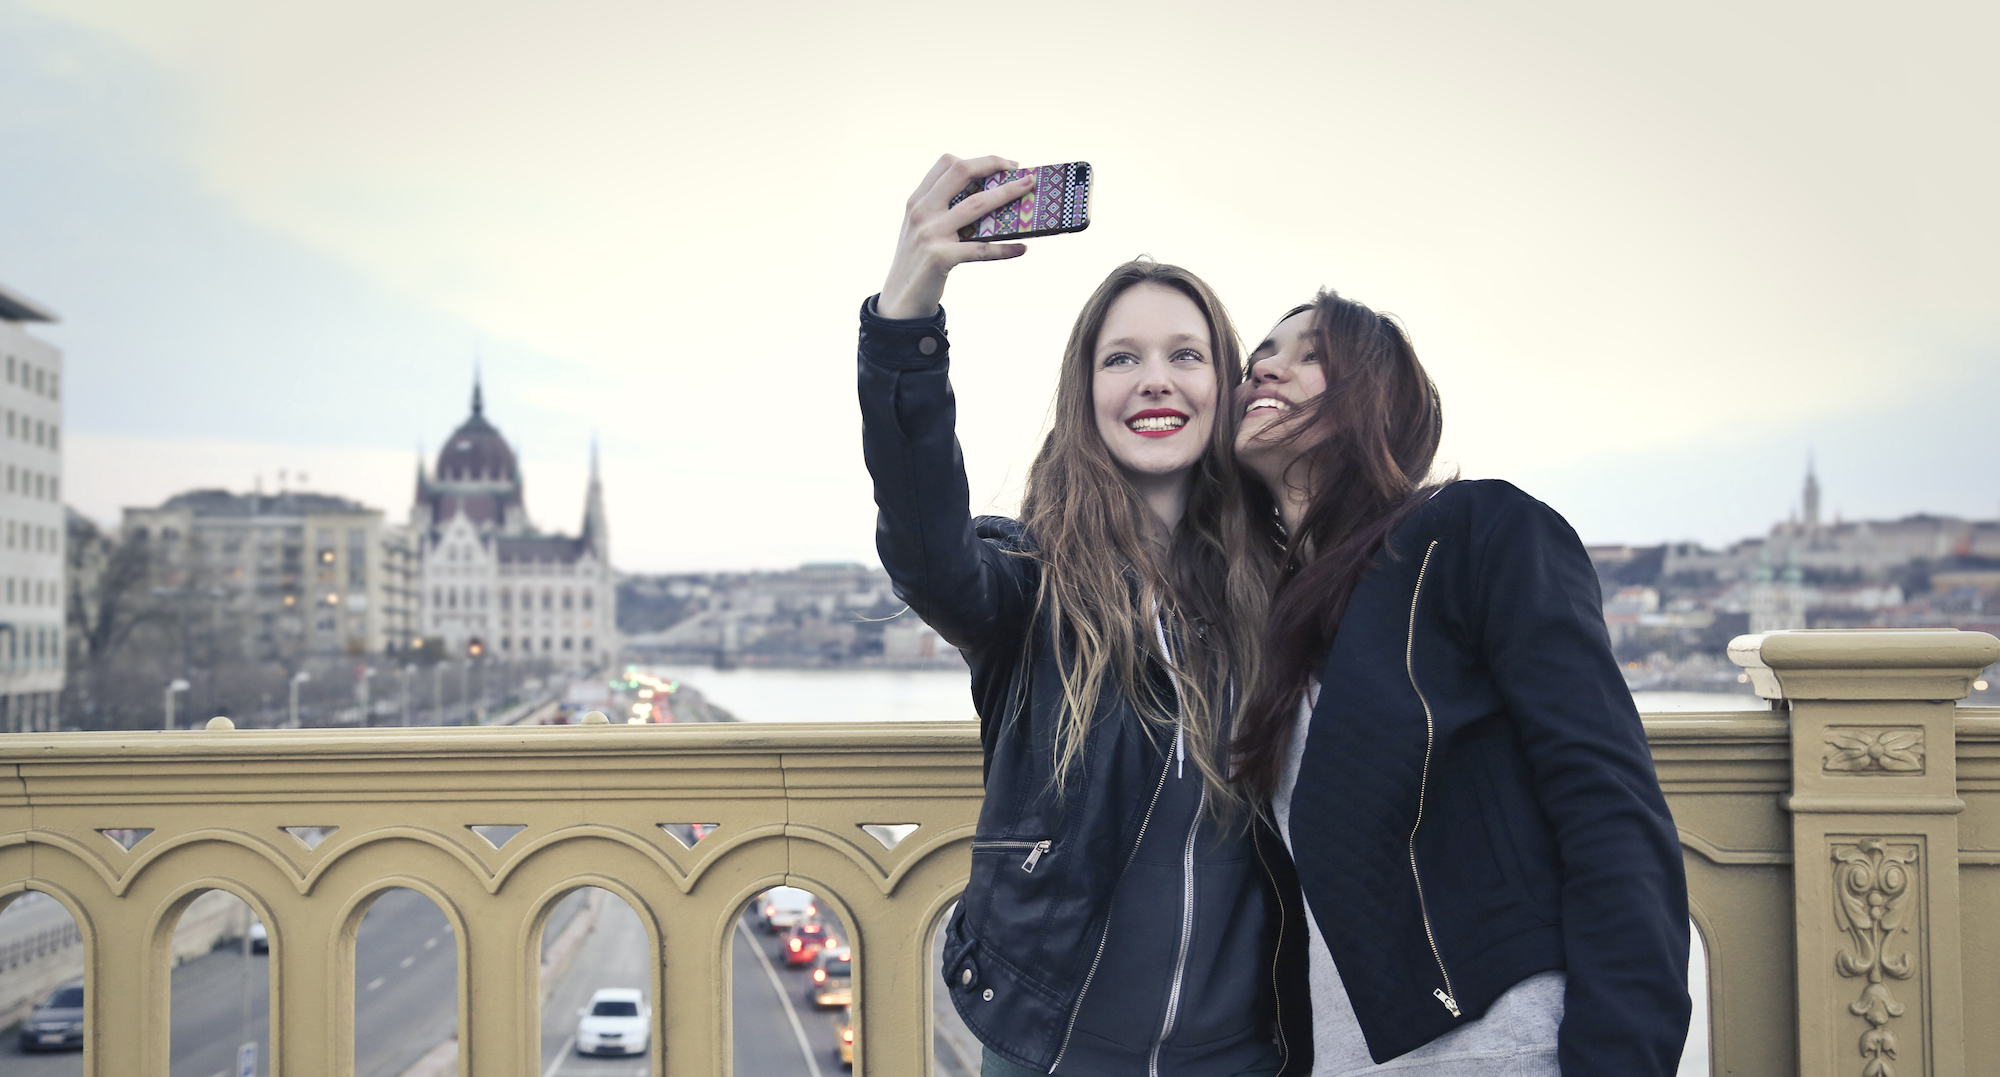 http://obviousmag.org/a_hora_e_a_vez/2015/04/19/two-girls-smartphone-selfie.jpg